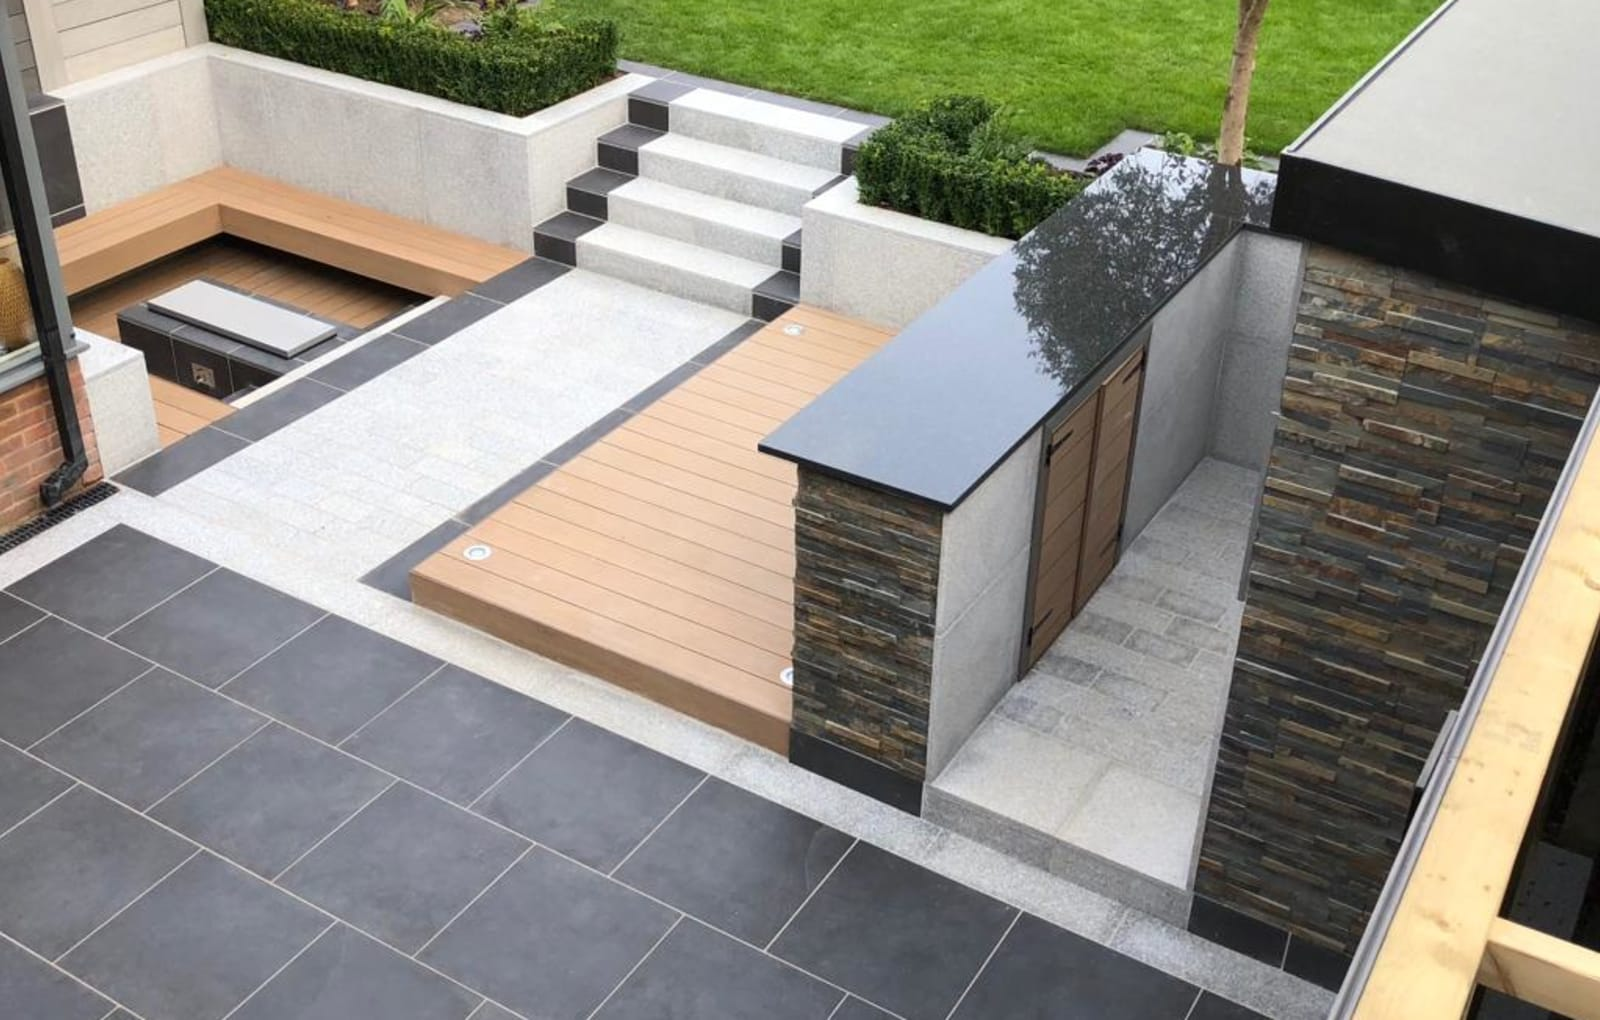 Symphony paving in Blue and Granite Eclipse in Light